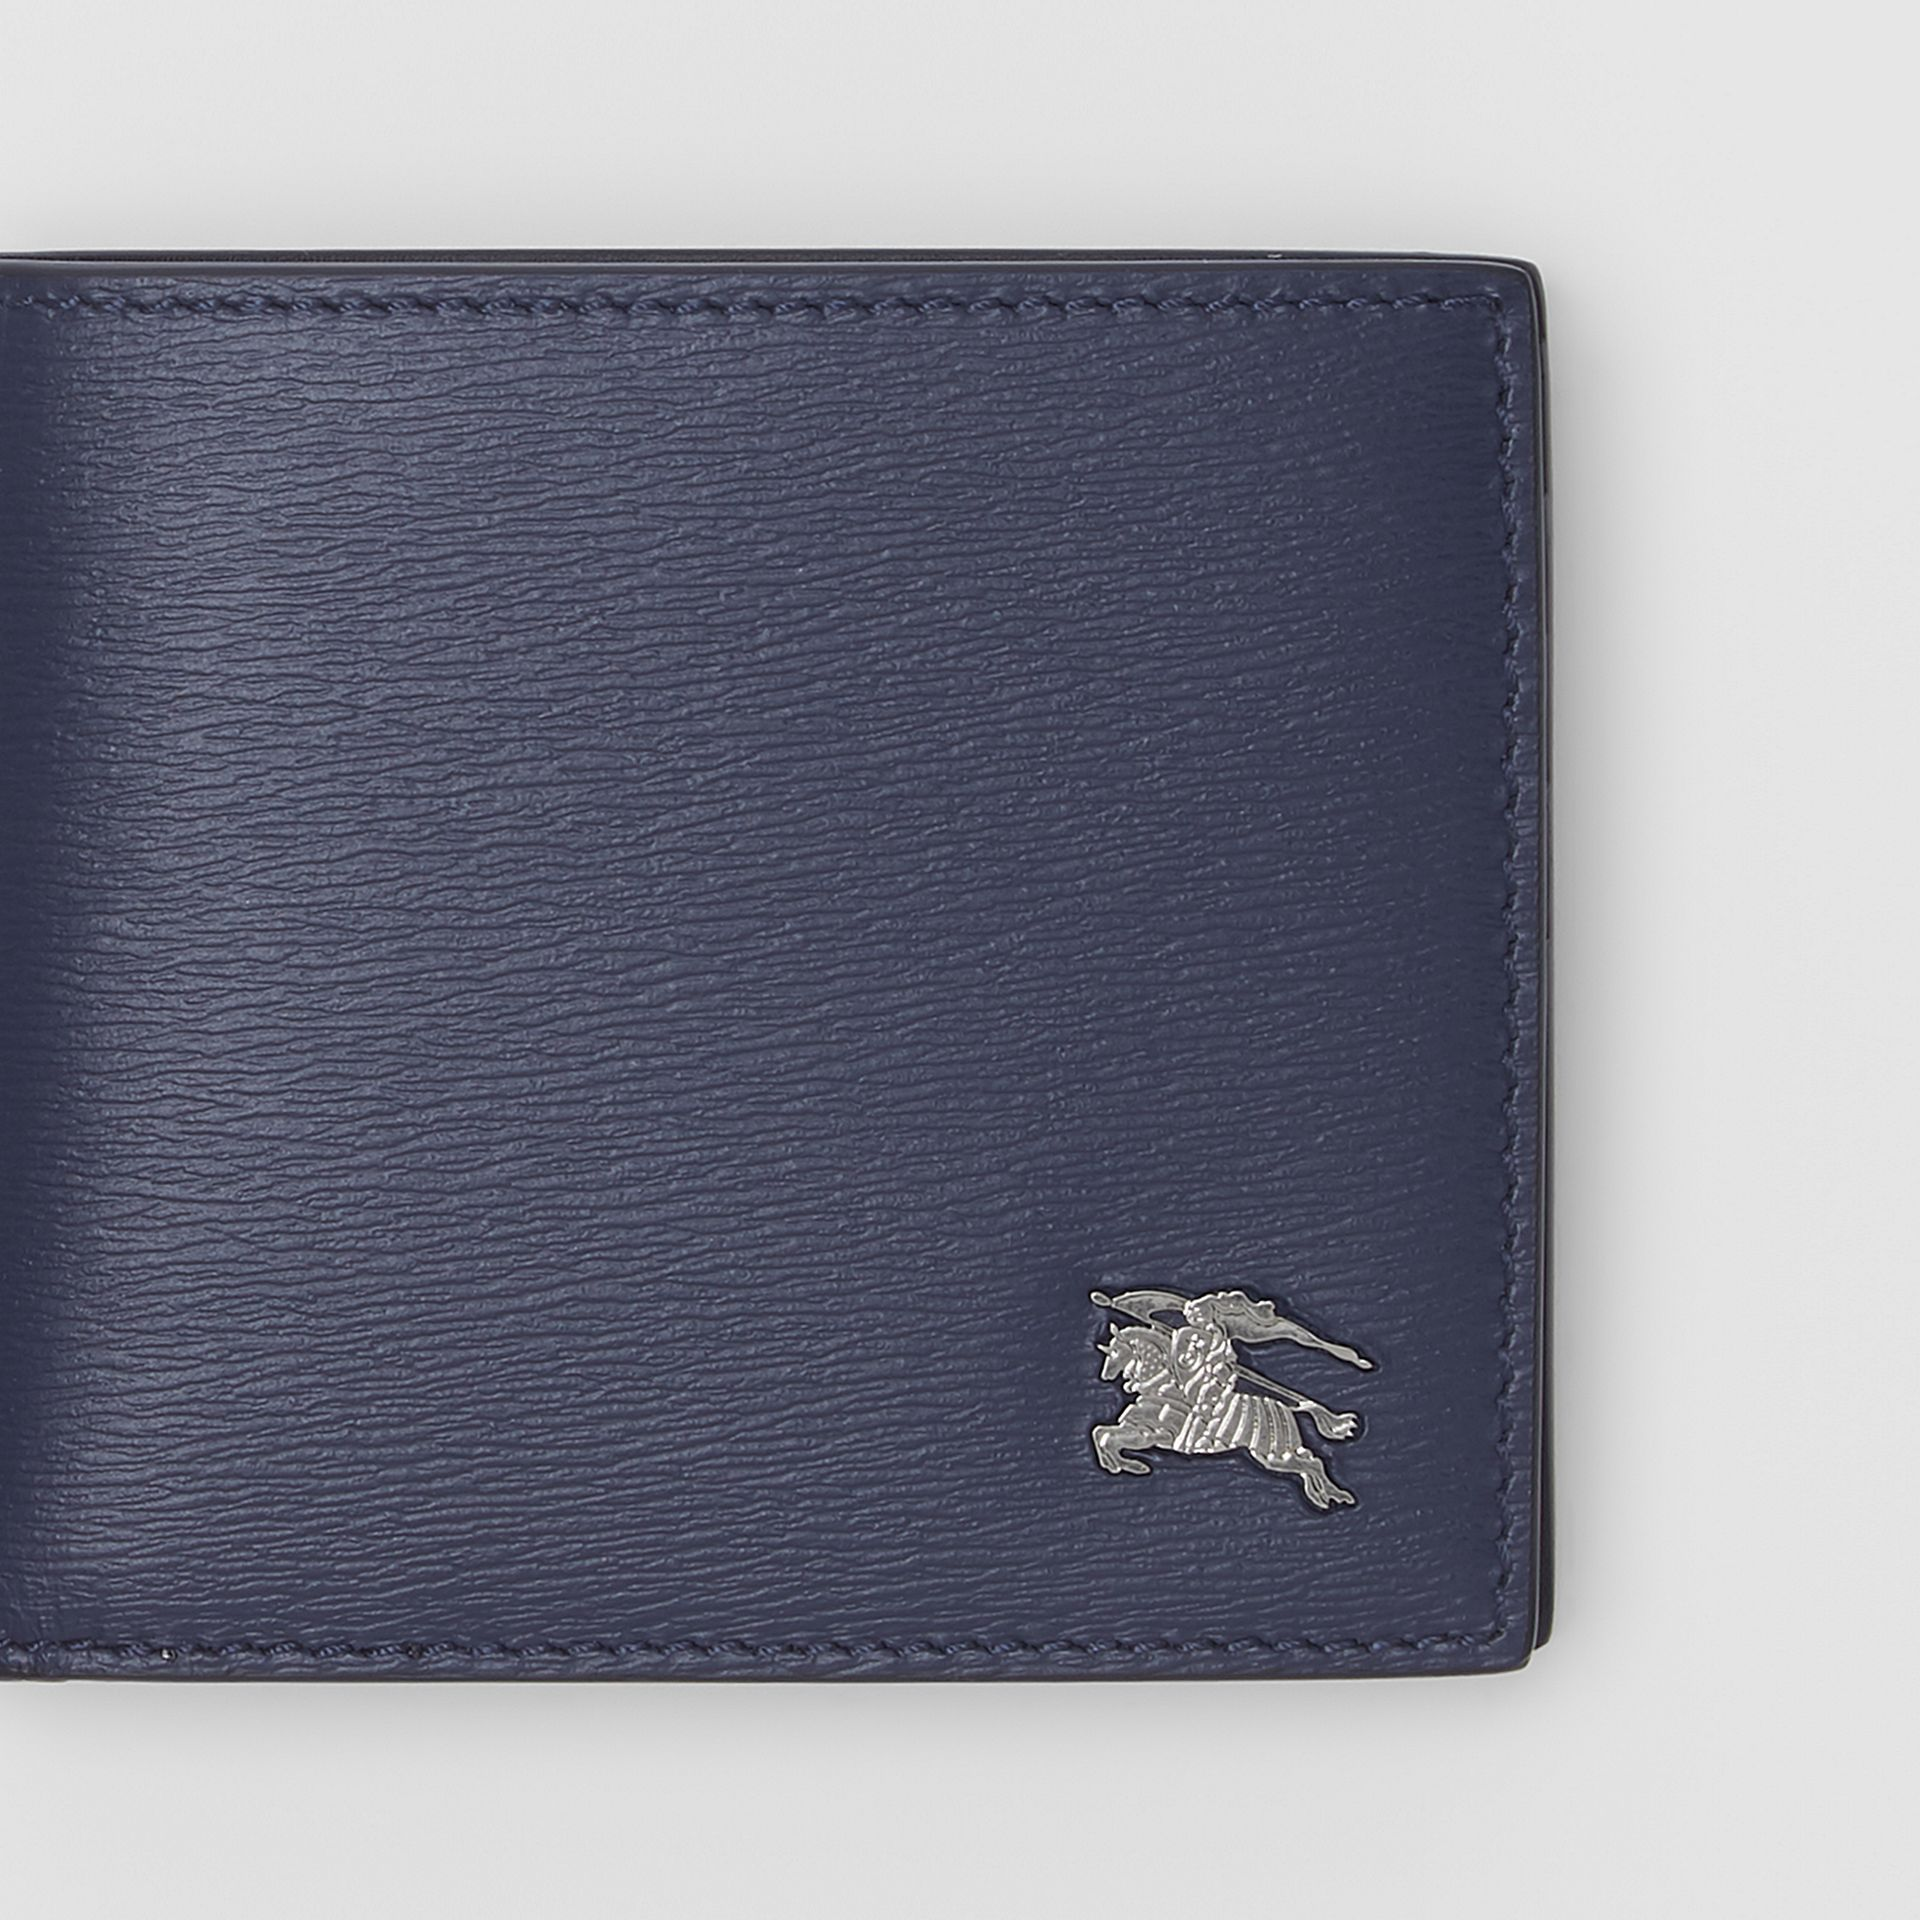 London Leather Bifold Wallet with ID Card Case in Navy - Men | Burberry Australia - gallery image 1